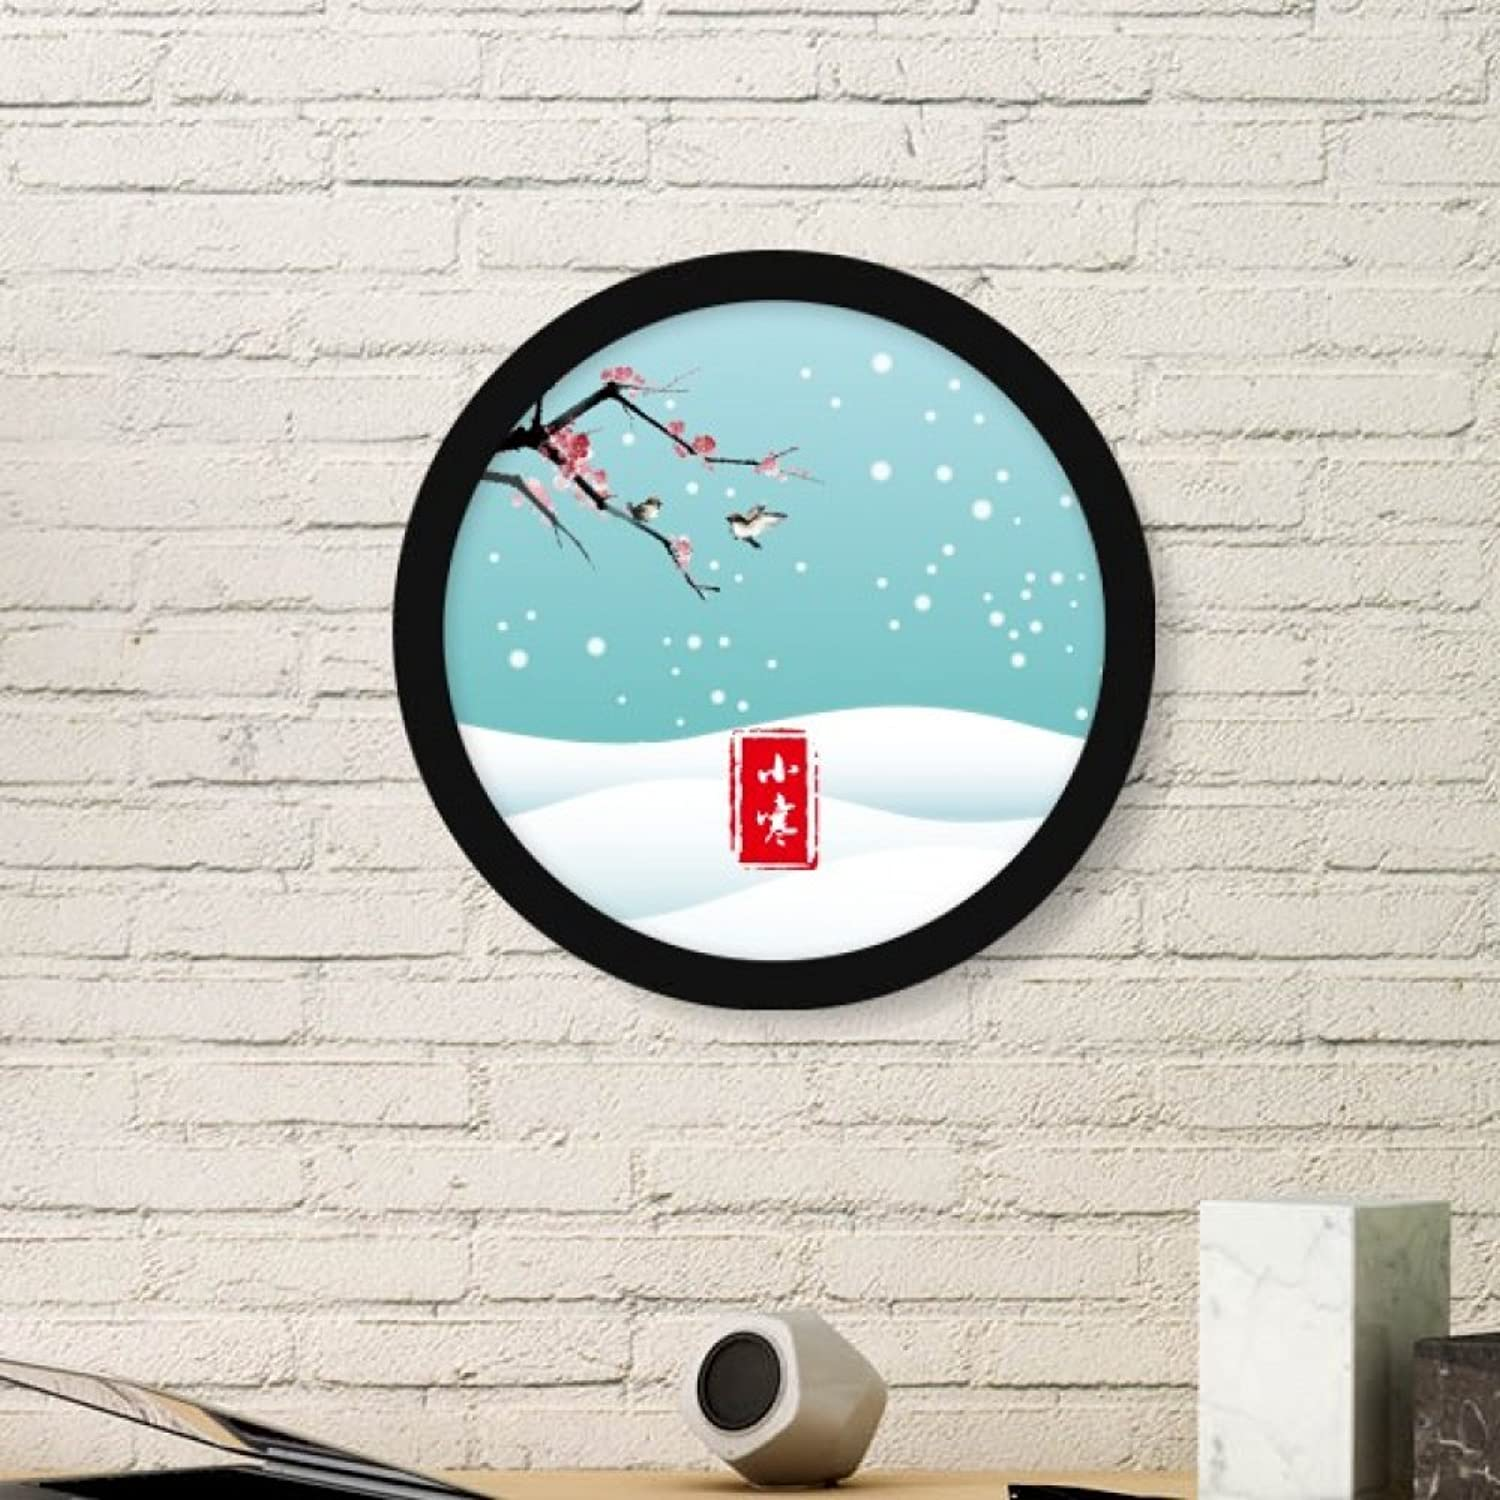 Circular Slight Cold Twenty Four Solar Term Art Painting Picture Photo Wooden Round Frame Home Wall Decor Gift